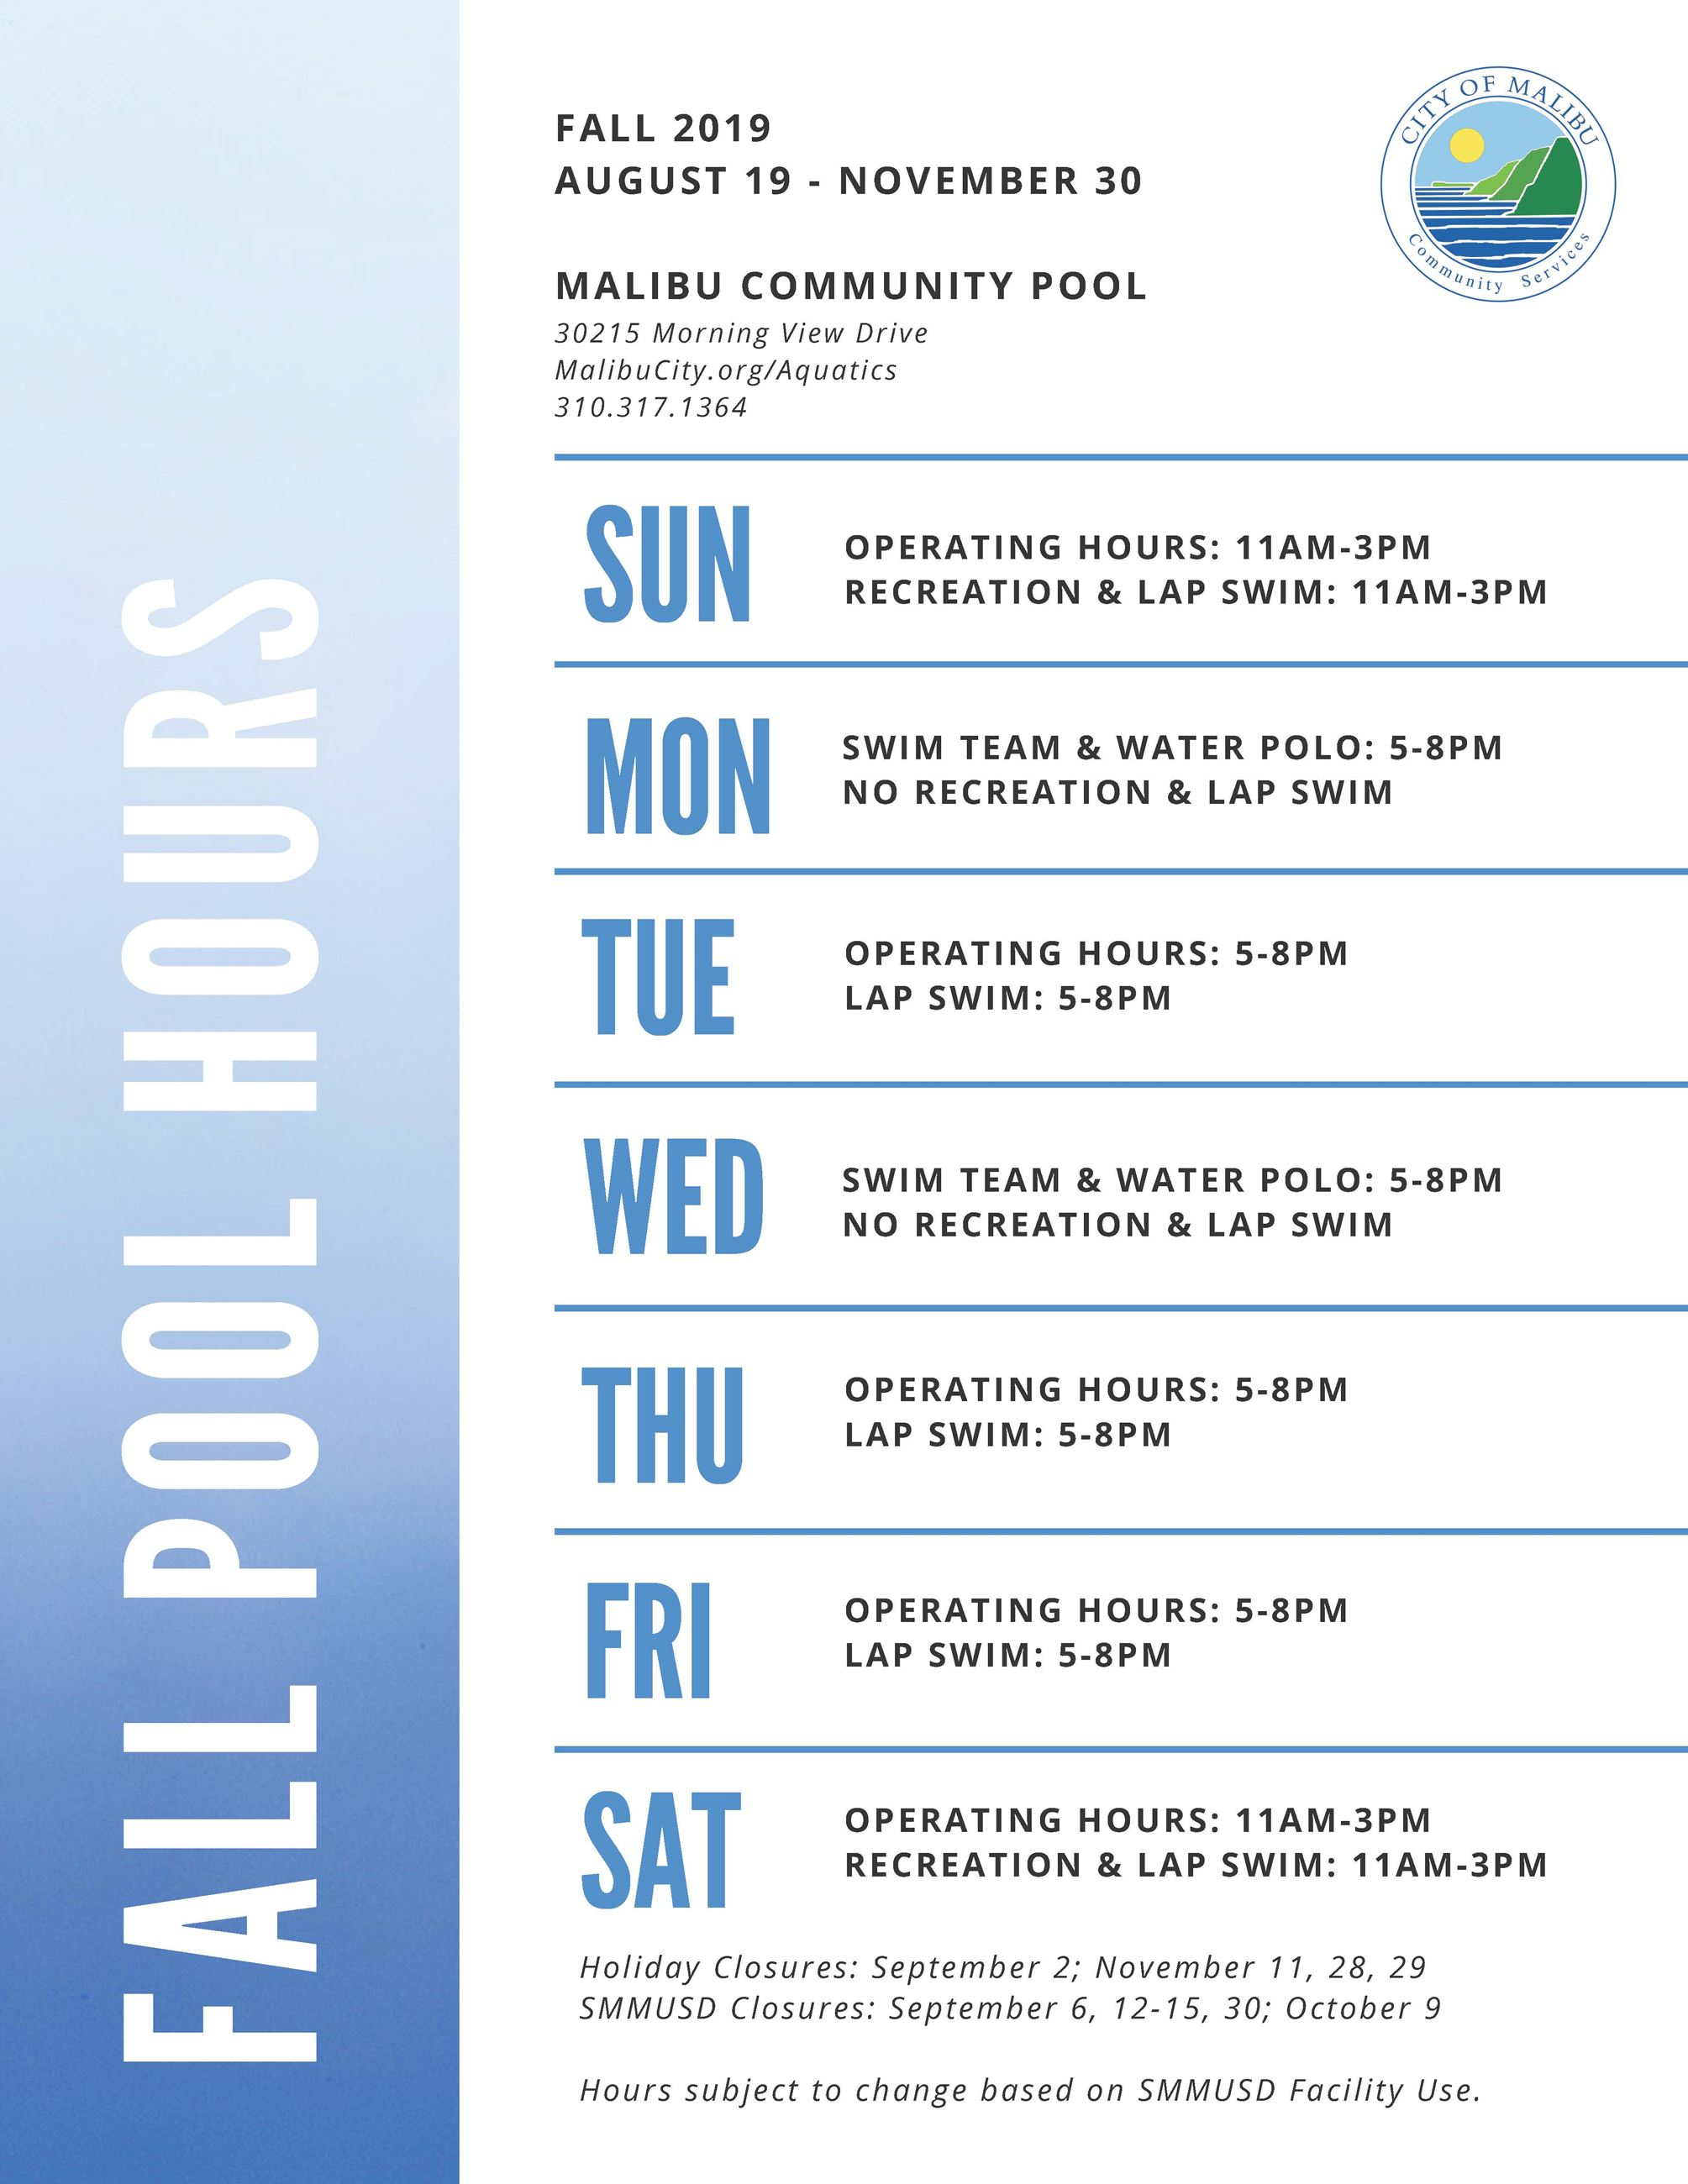 Fall 2019 Pool Hours